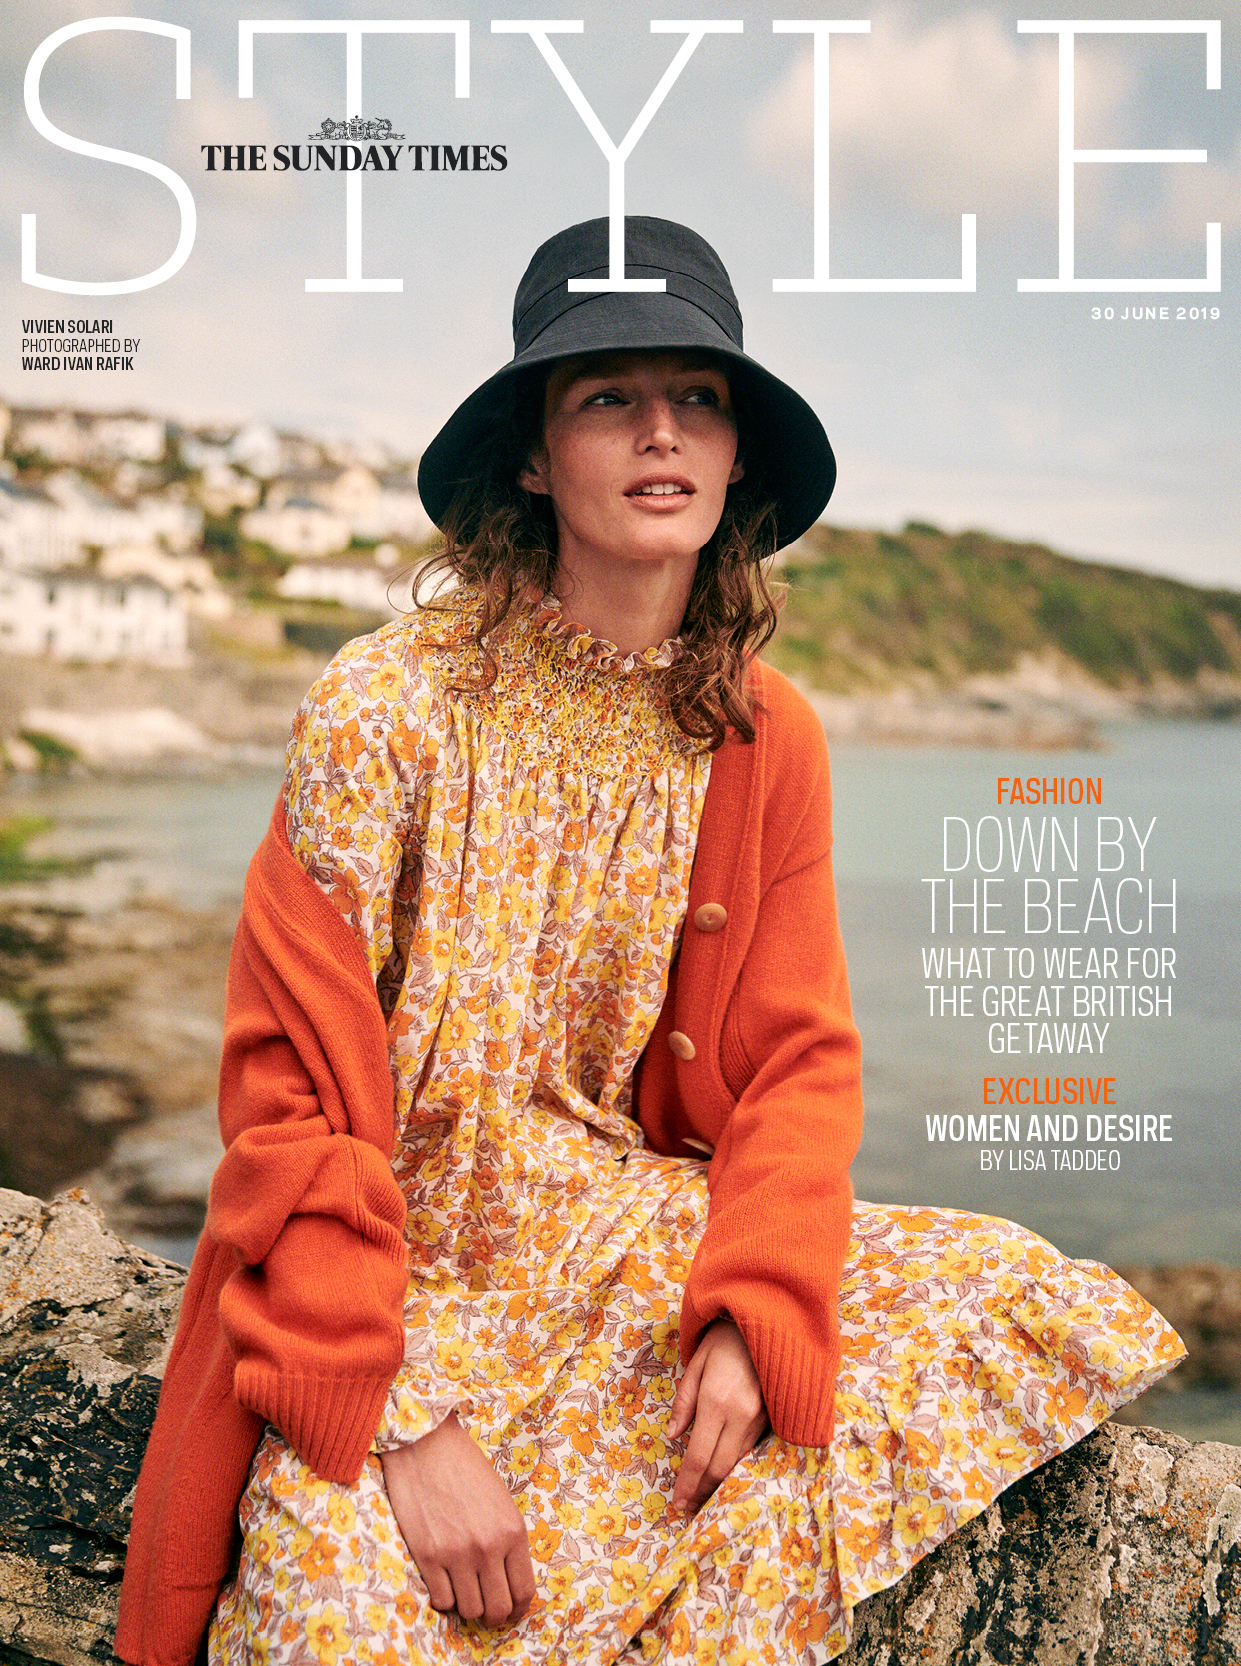 The Sunday Times STYLE 30th June 2019